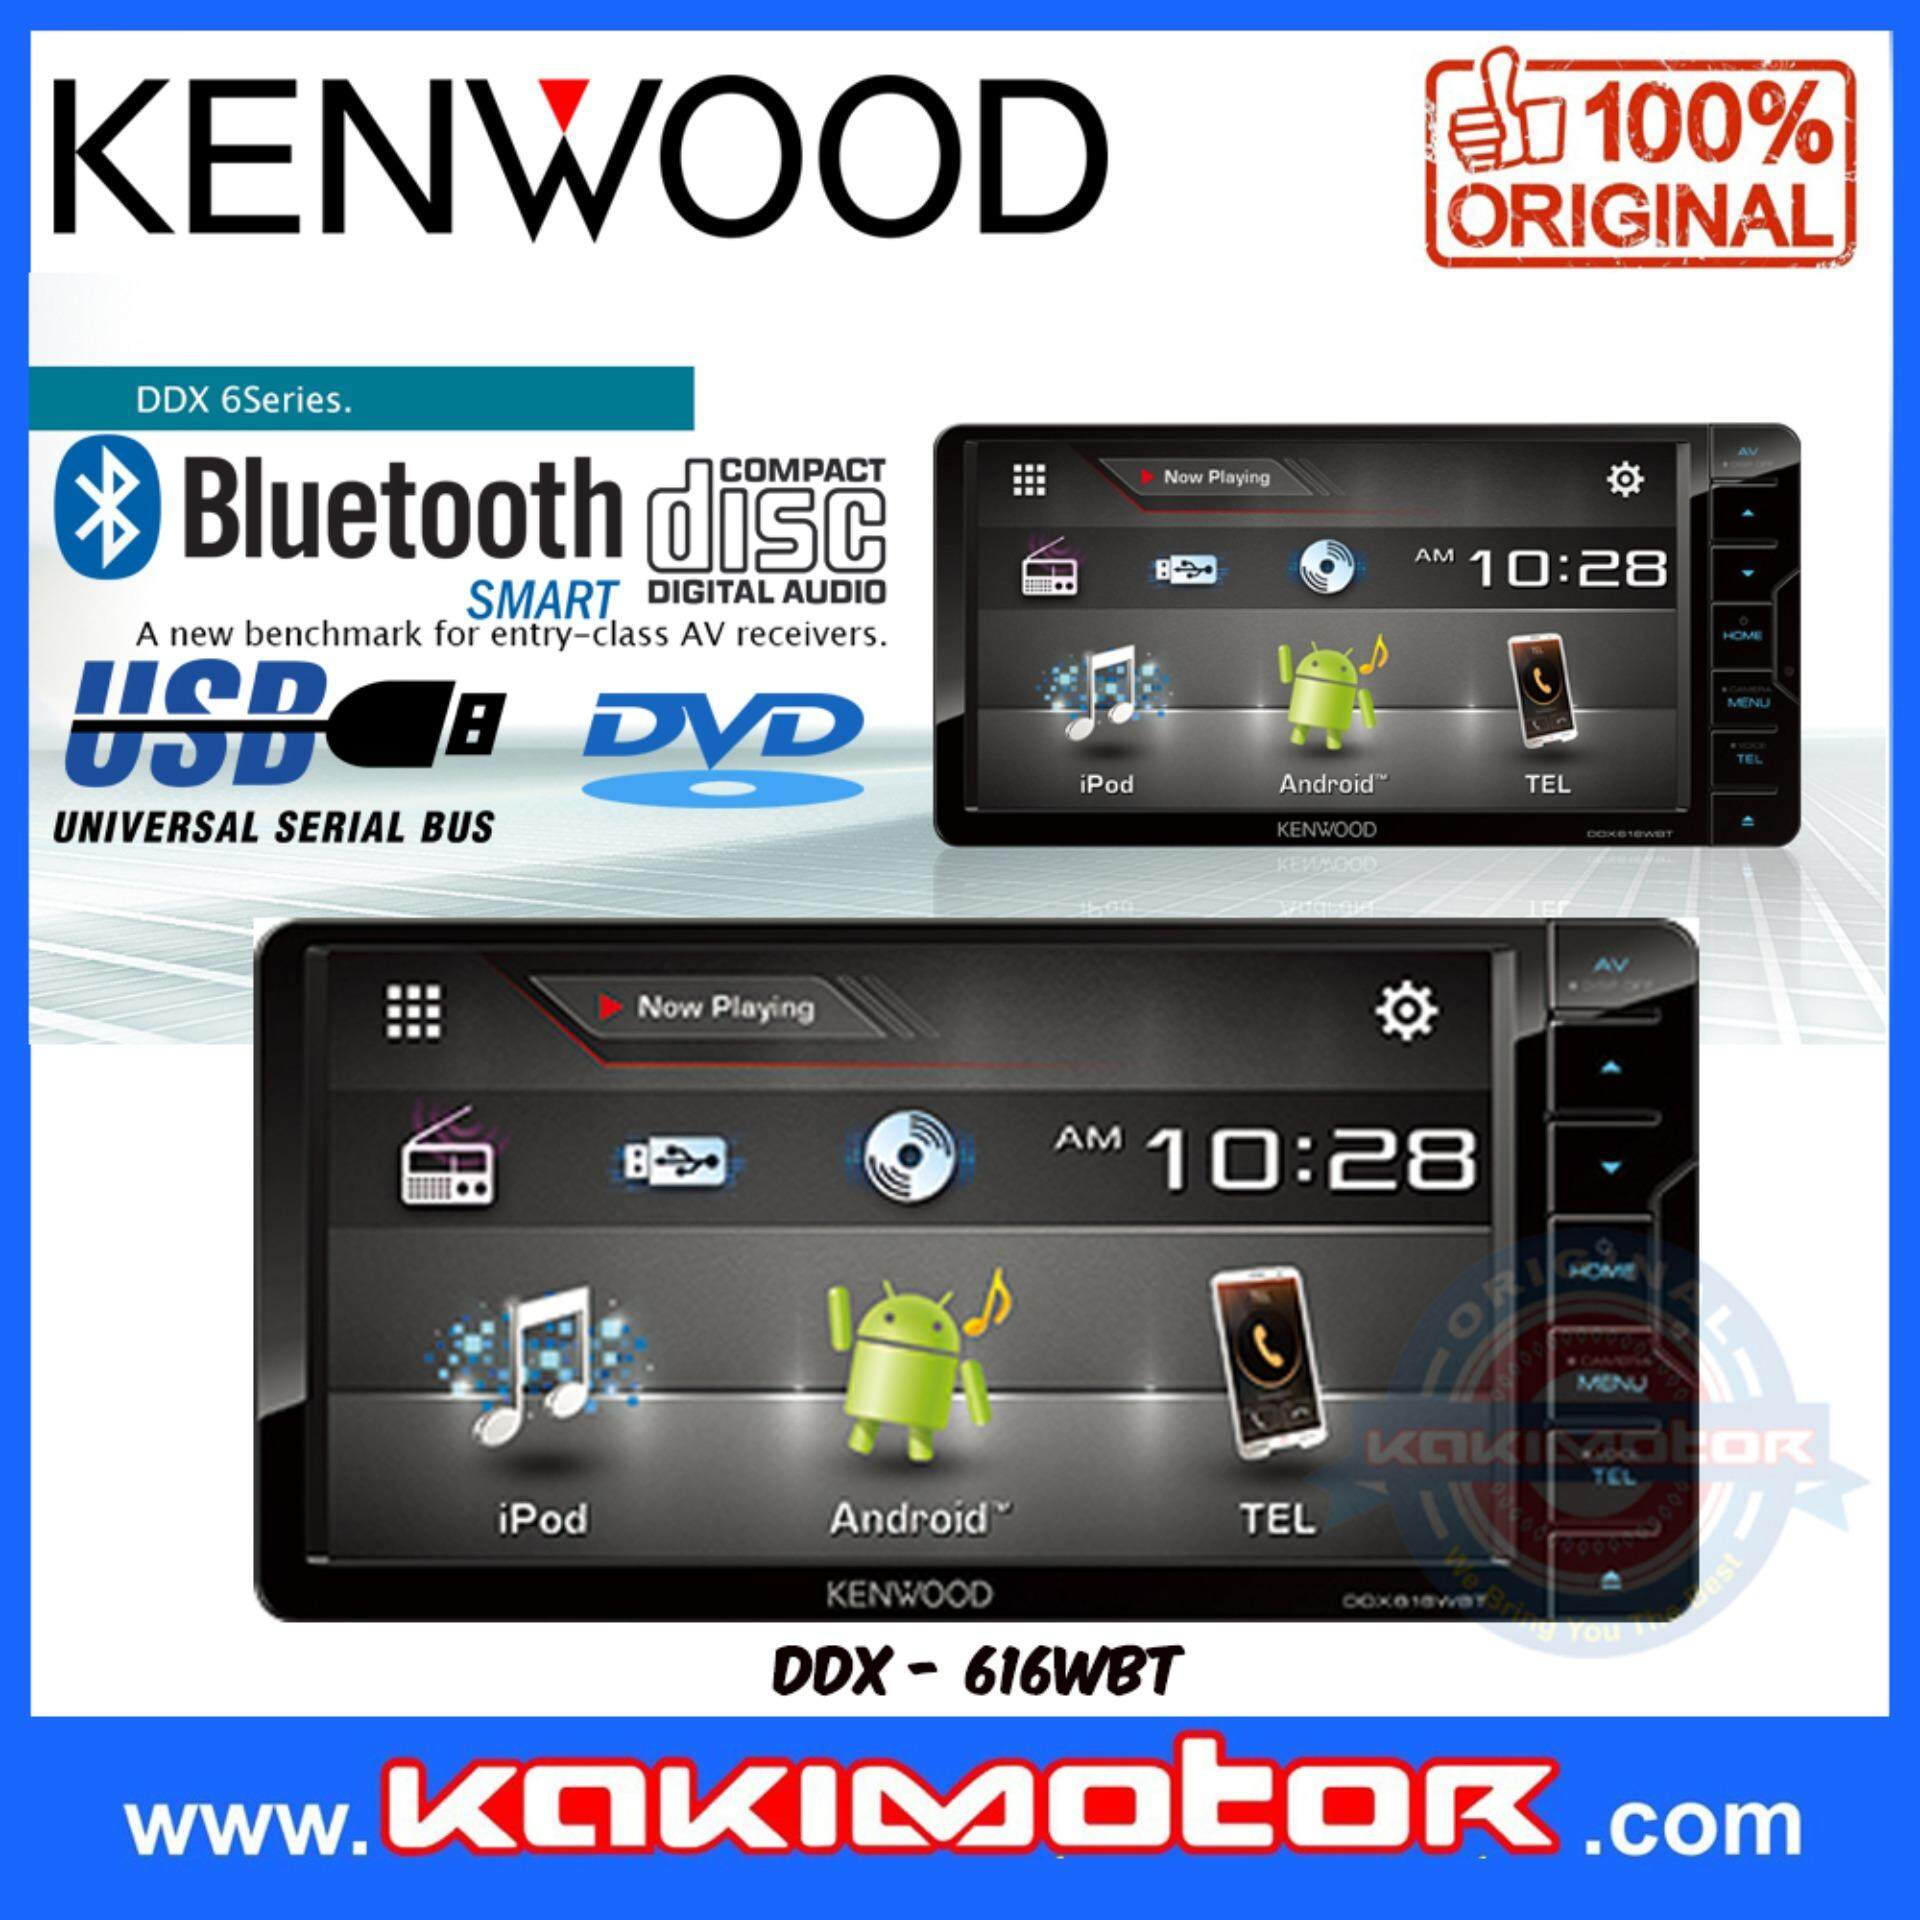 """KENWOOD DDX616WBT 7"""" USB/BLUETOOTH/ANDROID/IPHONE DOUBLE DIN PLAYER"""